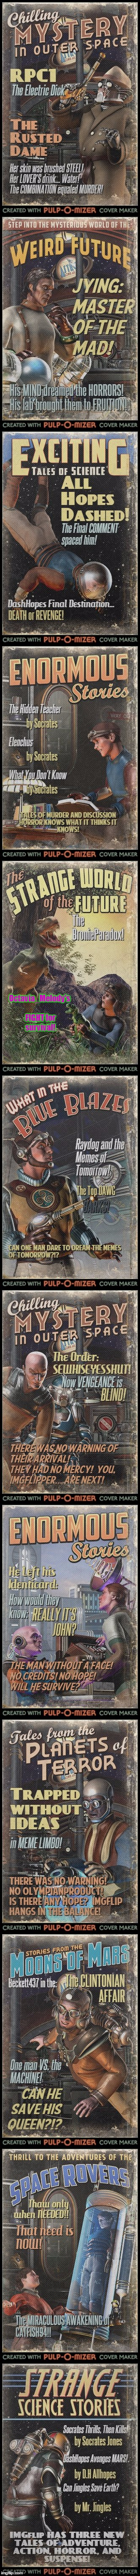 IMGflip Covers | Octavia_Melody's FIGHT for survival! | image tagged in pulp art | made w/ Imgflip meme maker